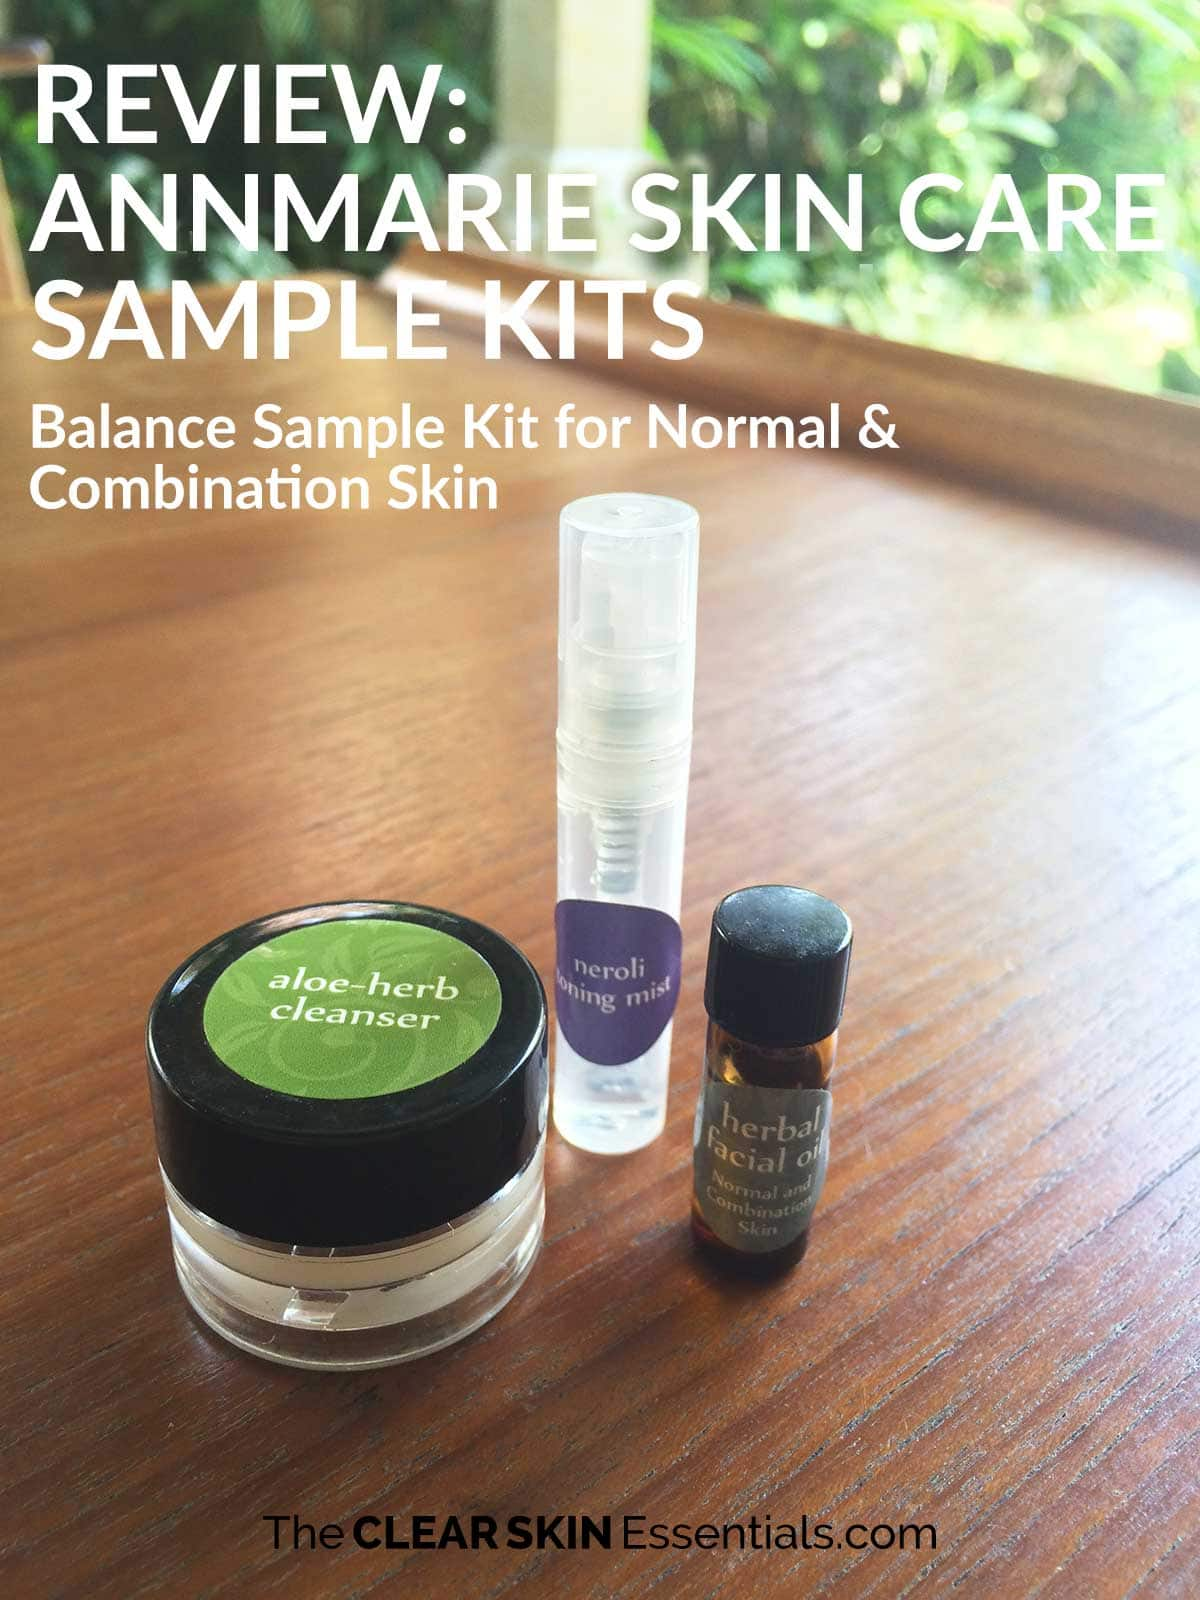 Review of Annmarie Skin Care Sample Kits featuring Neroli Toning Mist, Aloe Herb Cleanser, and Facial Oil For Normal Combination Skin.